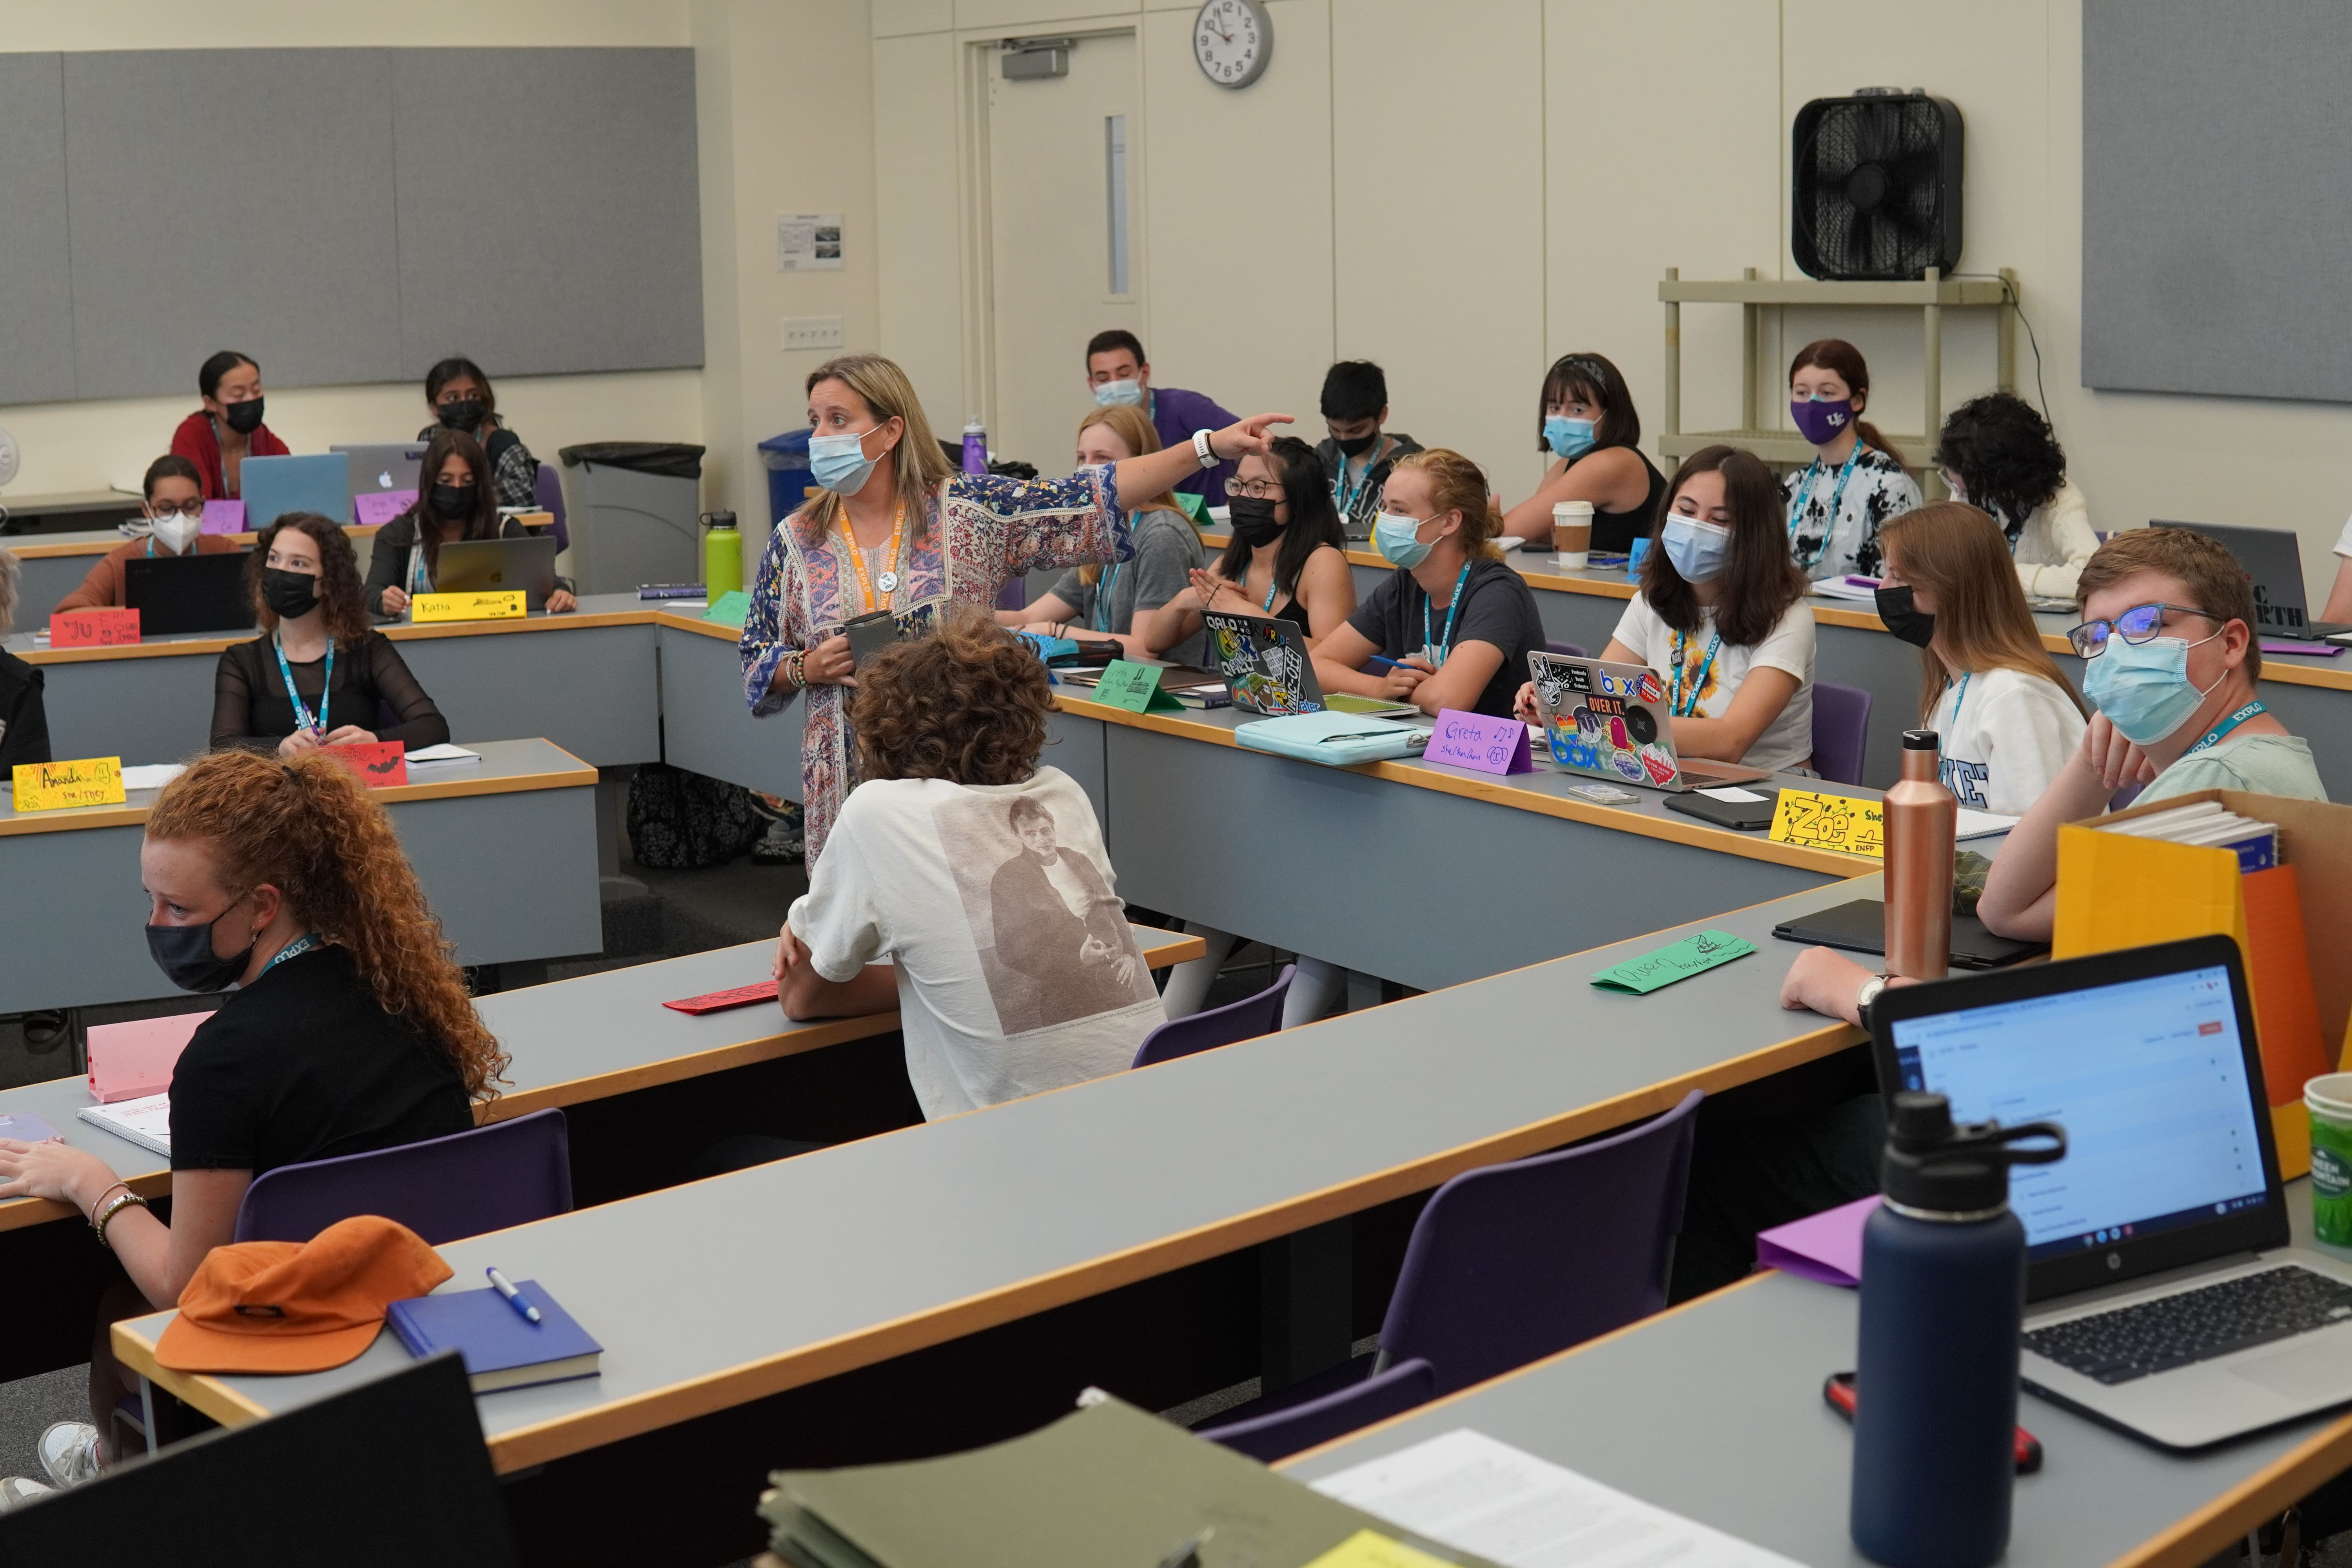 Students in the Psychology Concentration listen as their Instructor answers a question for a student while she wanders between the rows of desks.